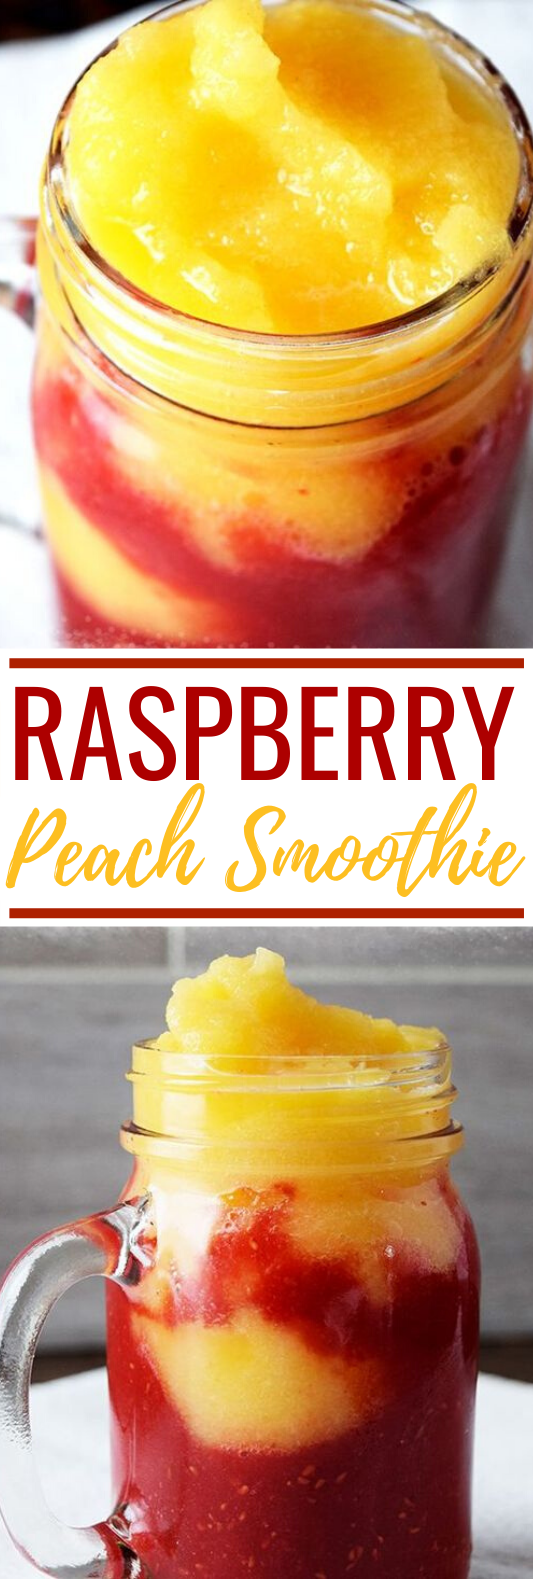 Raspberry Peach Smoothie #drinks #healthy #smoothies #slush #summer